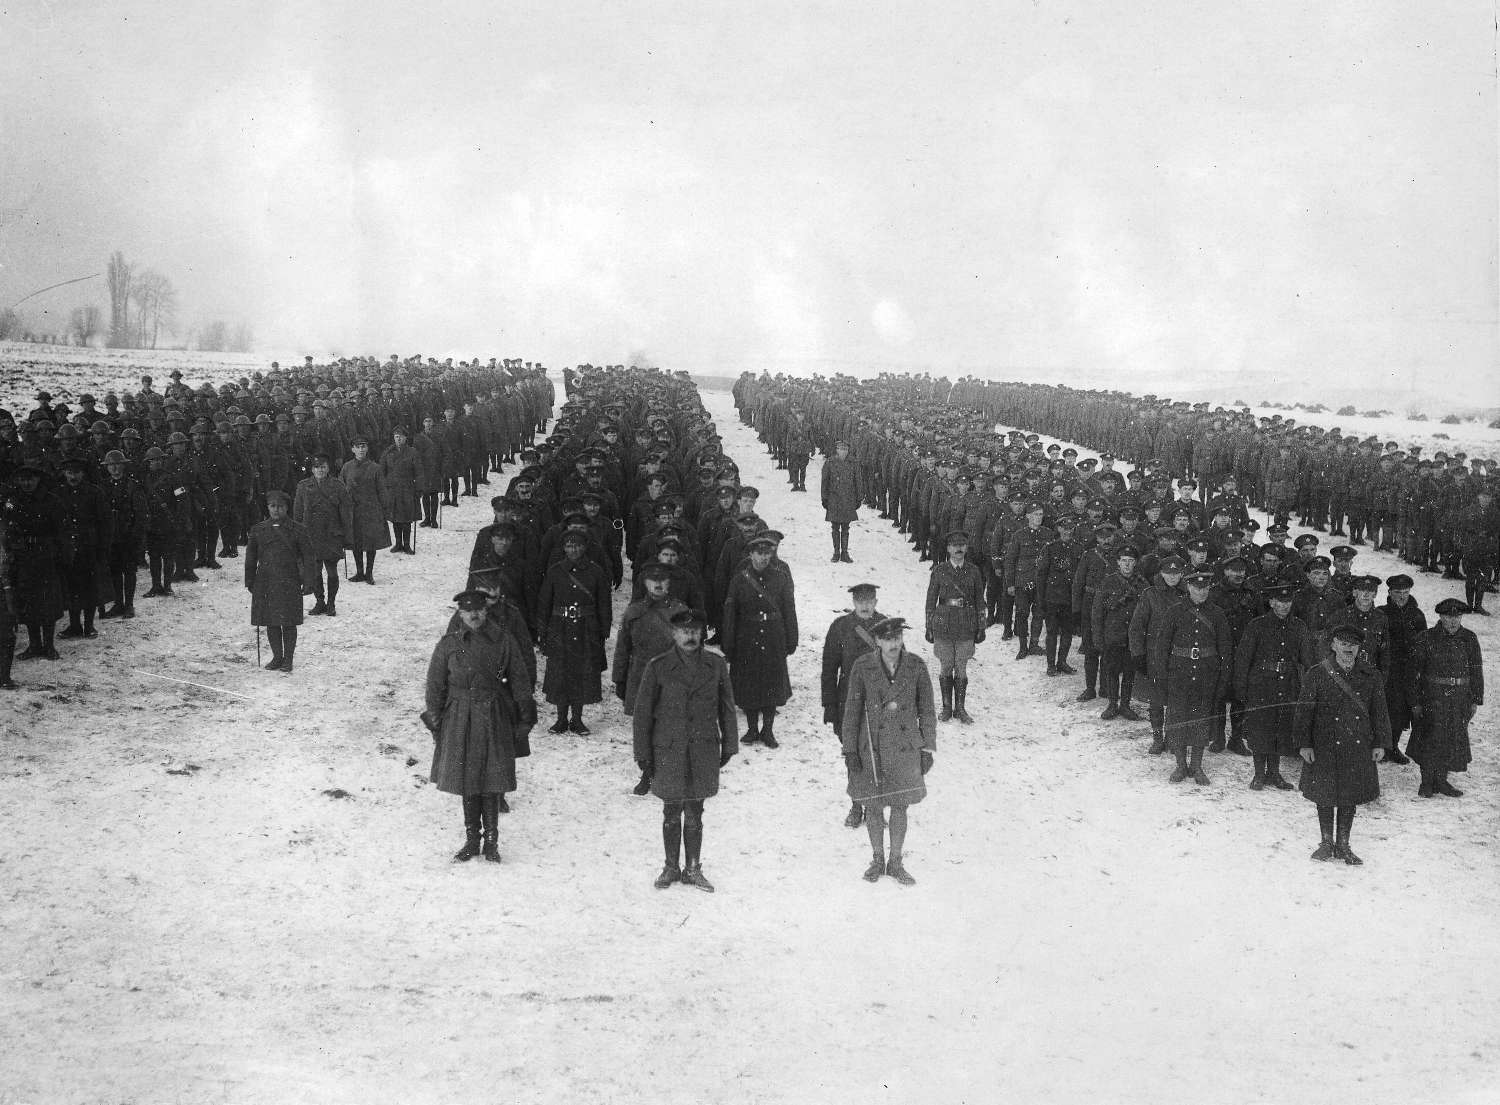 Canadian soldiers on parade at the Western Front, 1916. Official Photograph issued on behalf of the Press Bureau. Reference code AM54-S4-: Mil P281.50.